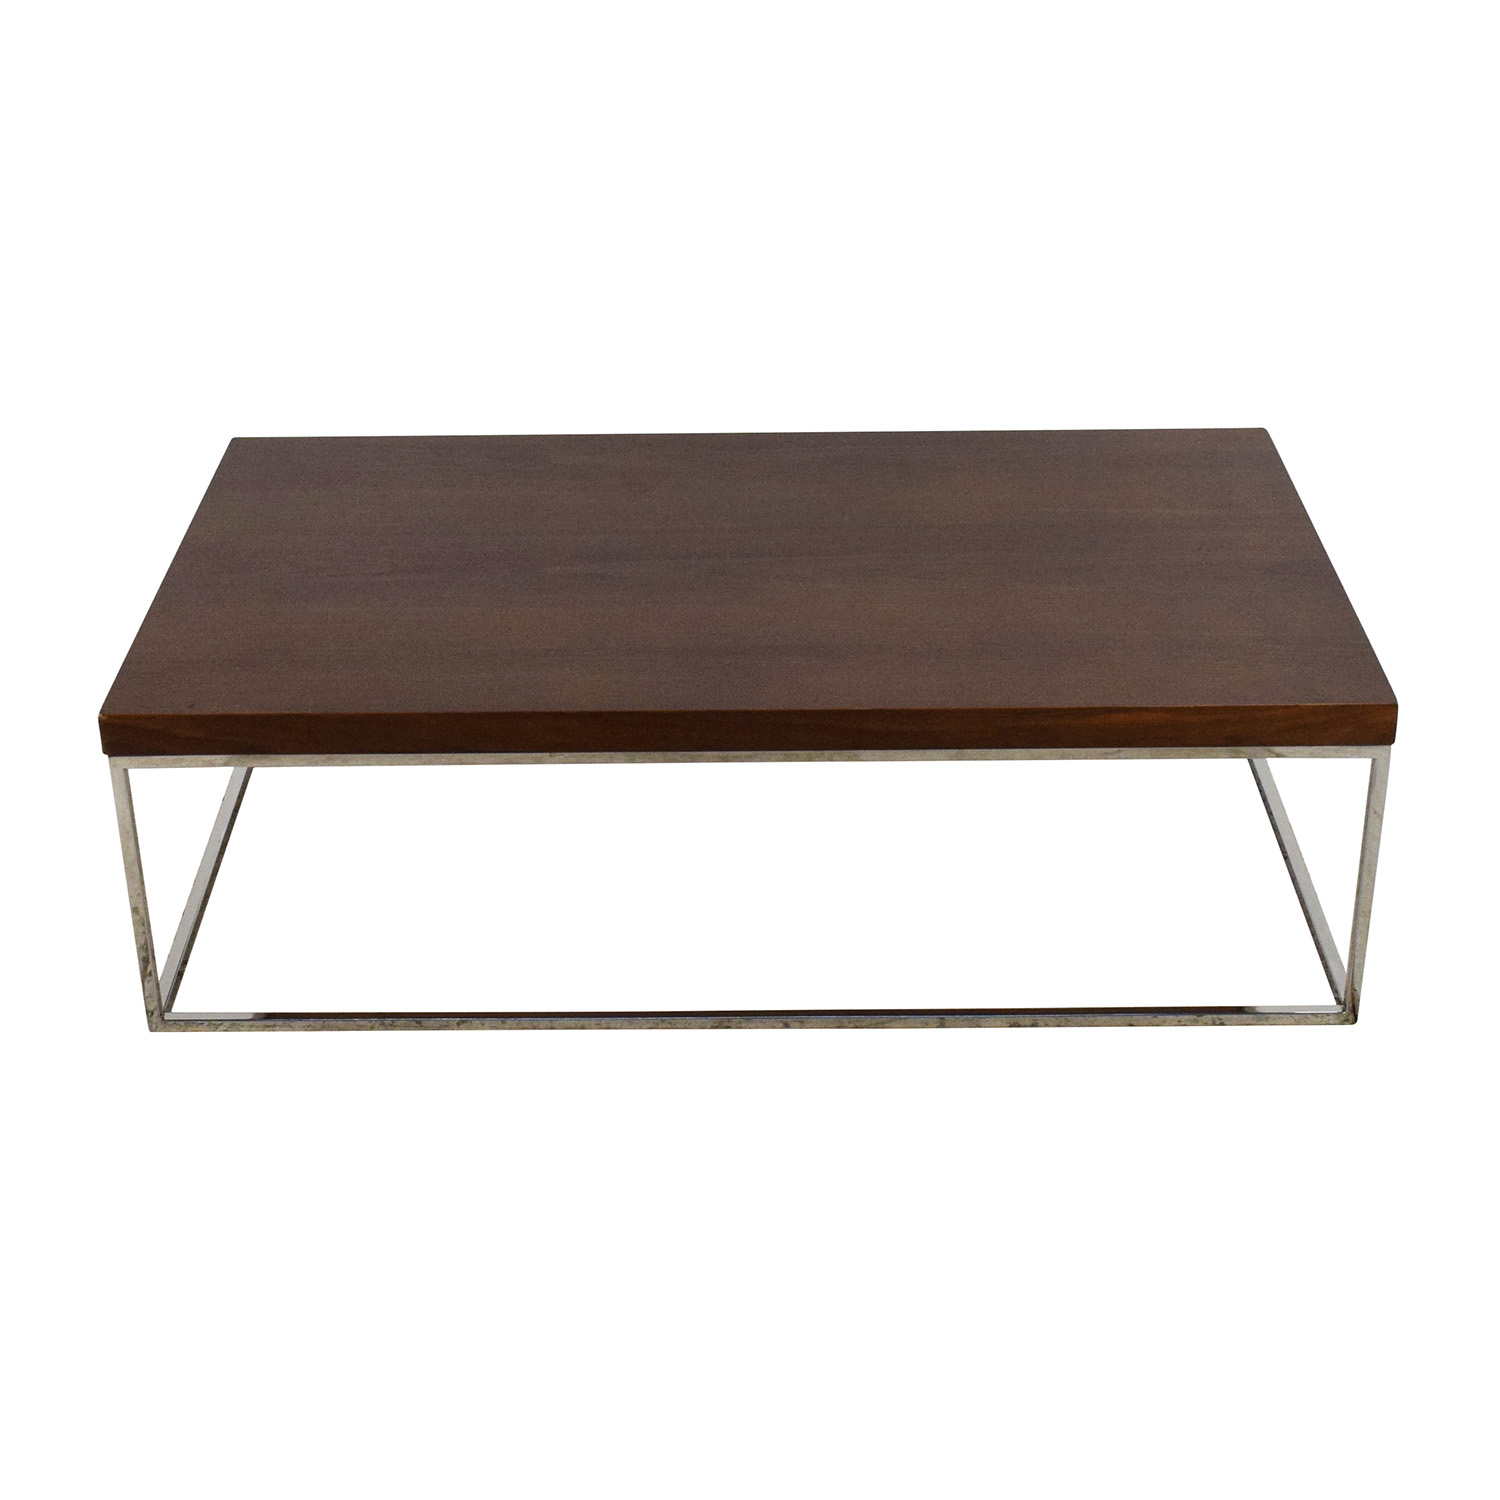 63% OFF Macy s Macy s Modern Rolling Round Coffee Table Tables